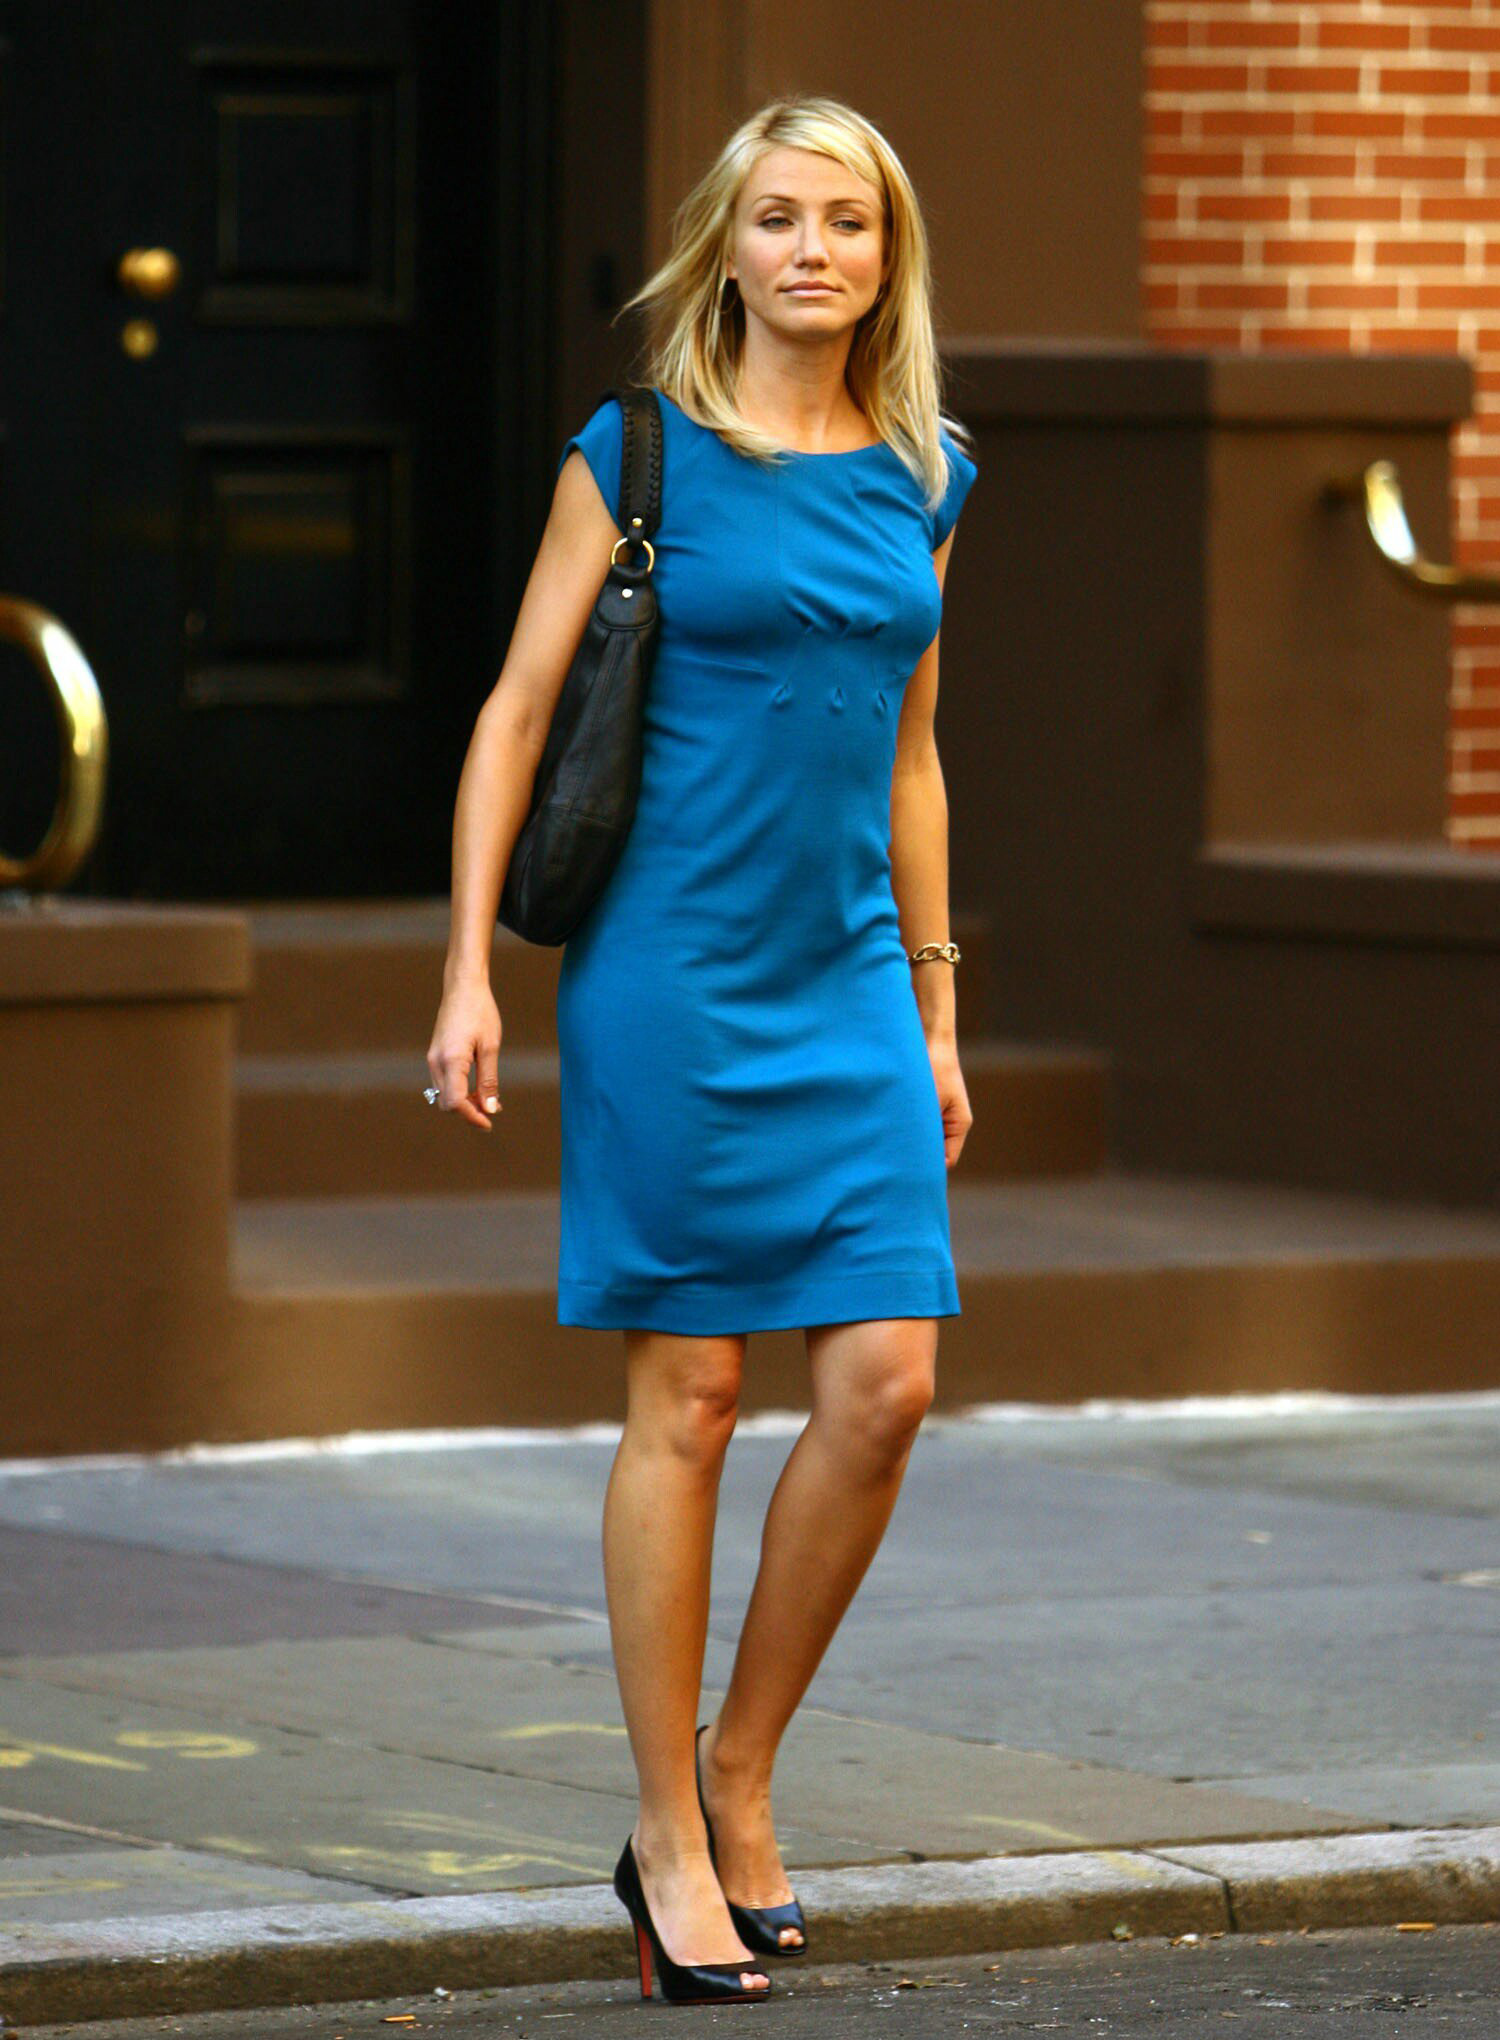 Cameron Diaz Height in Blue Dress  SheClickcom